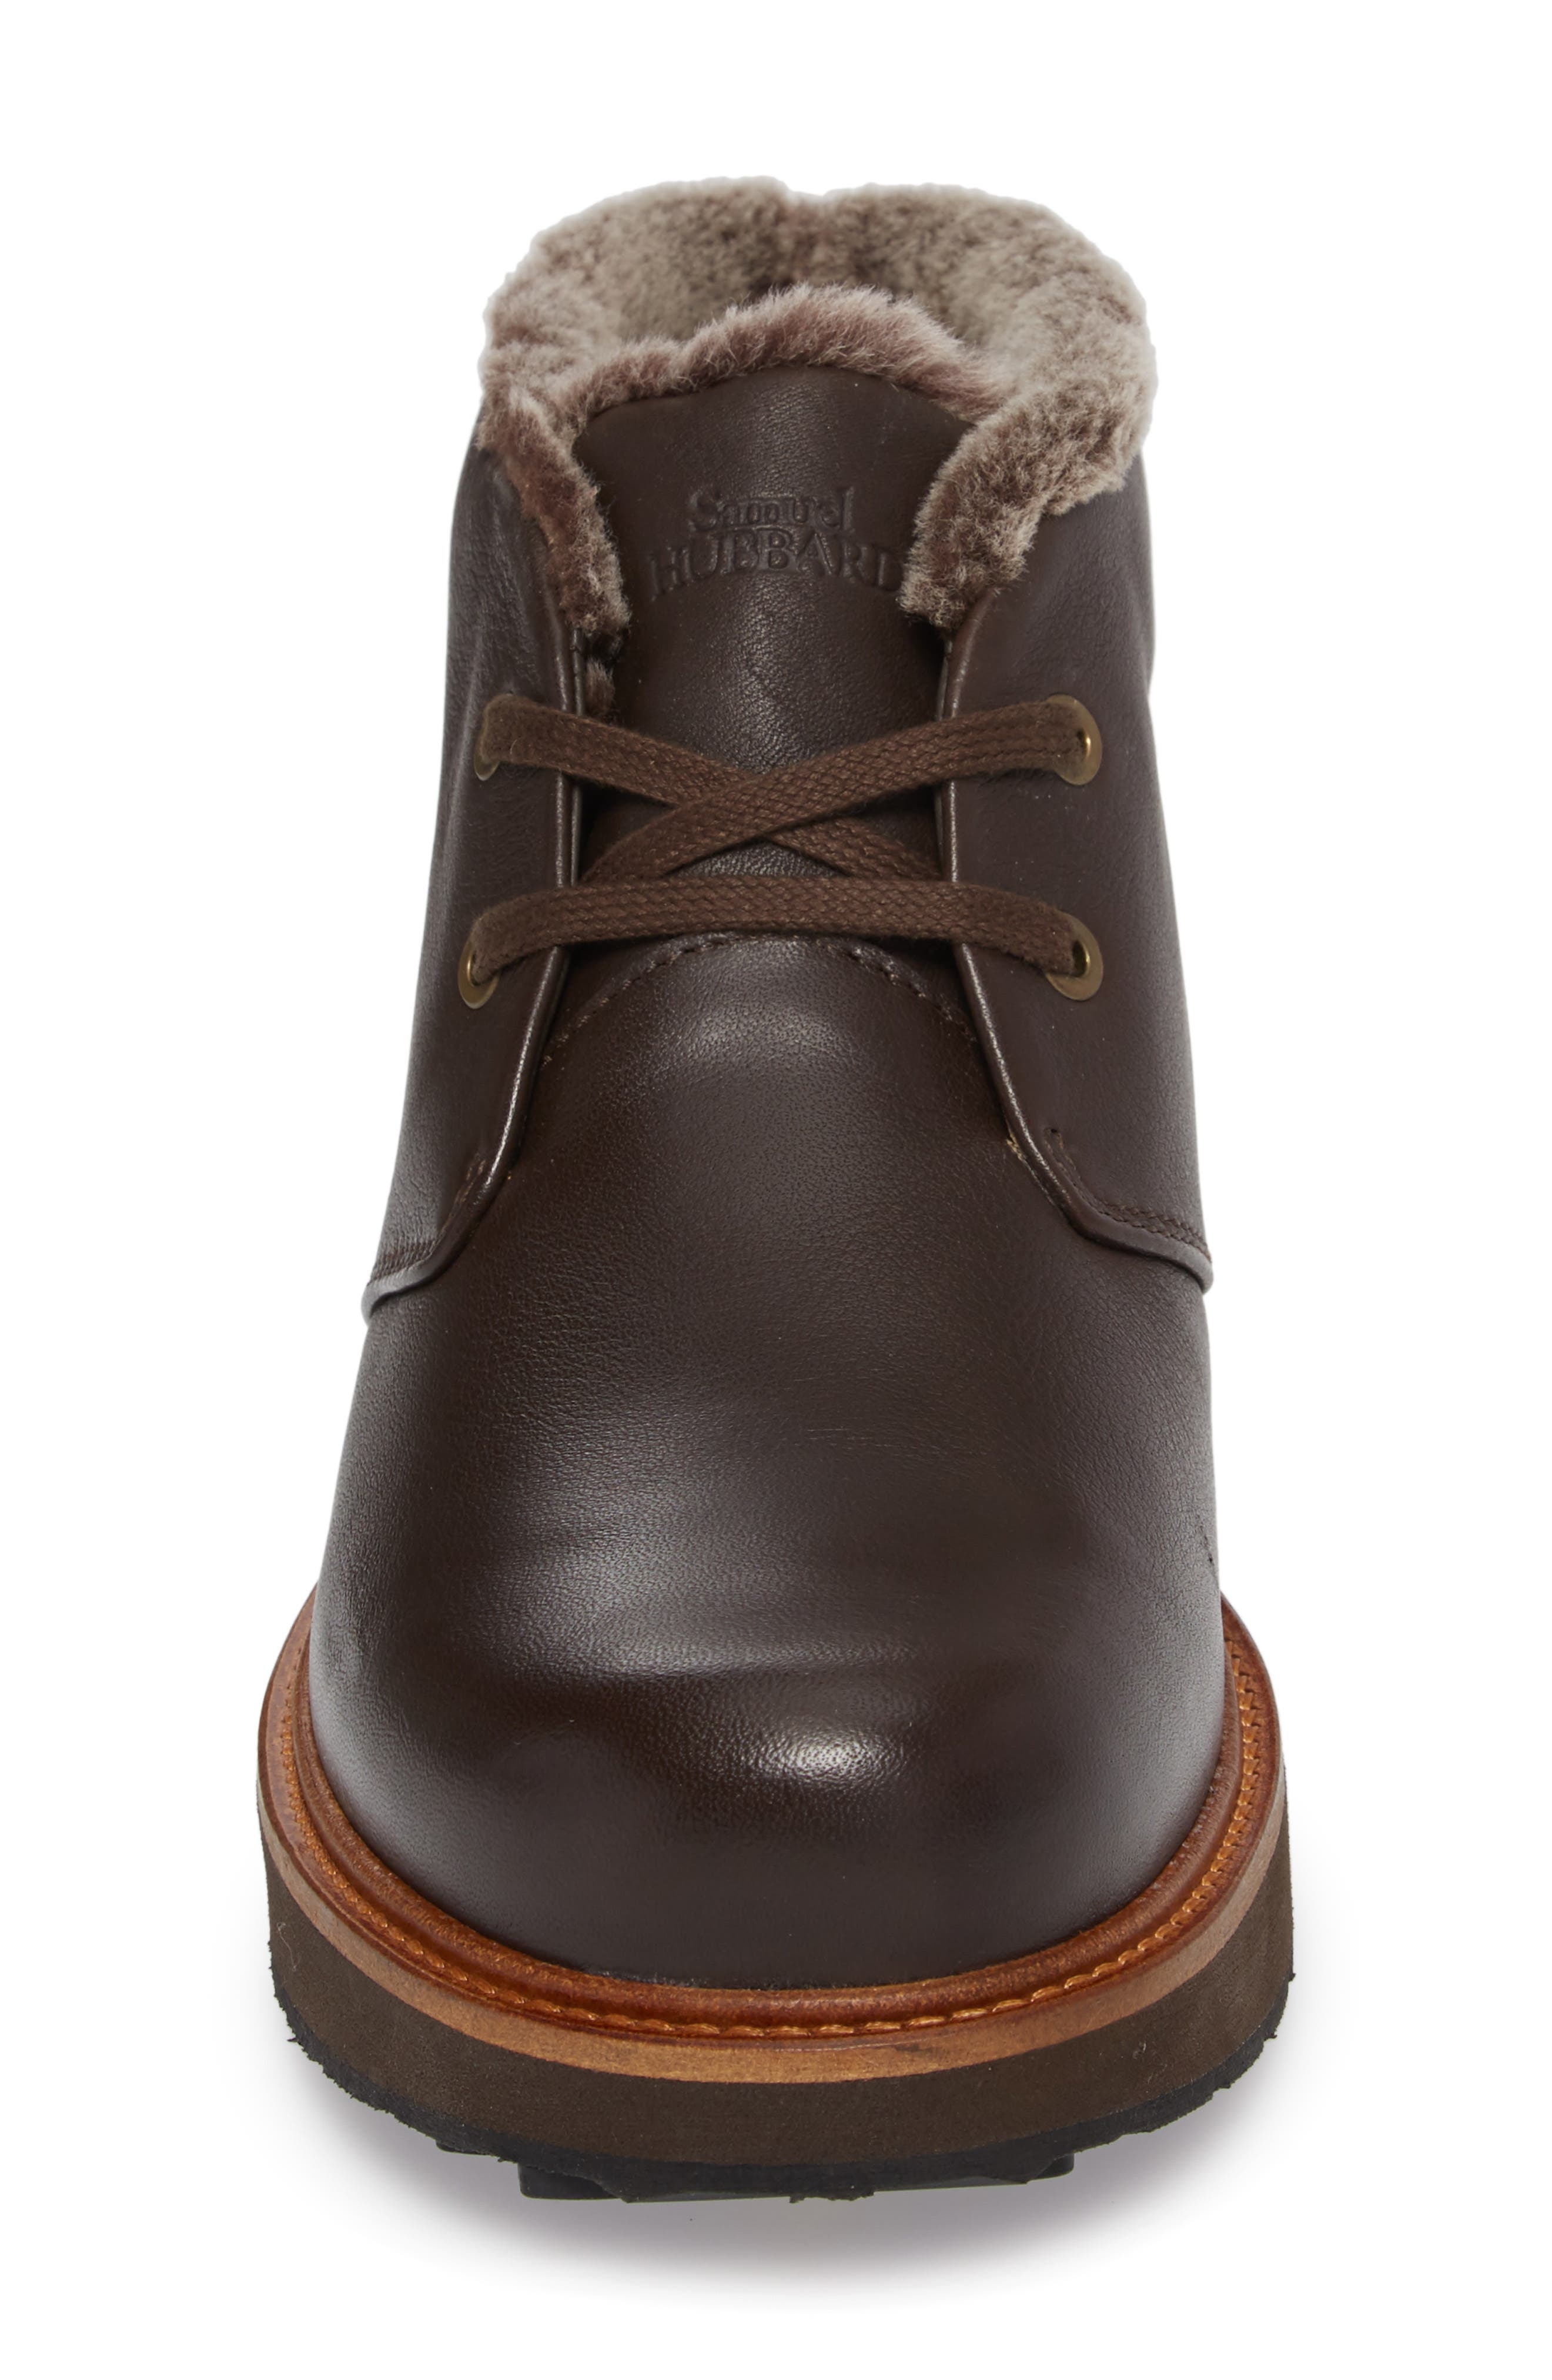 Winter's Day Waterproof Gore-Tex<sup>®</sup> Genuine Shearling Lined Chukka Boot,                             Alternate thumbnail 4, color,                             Espresso Brown Leather